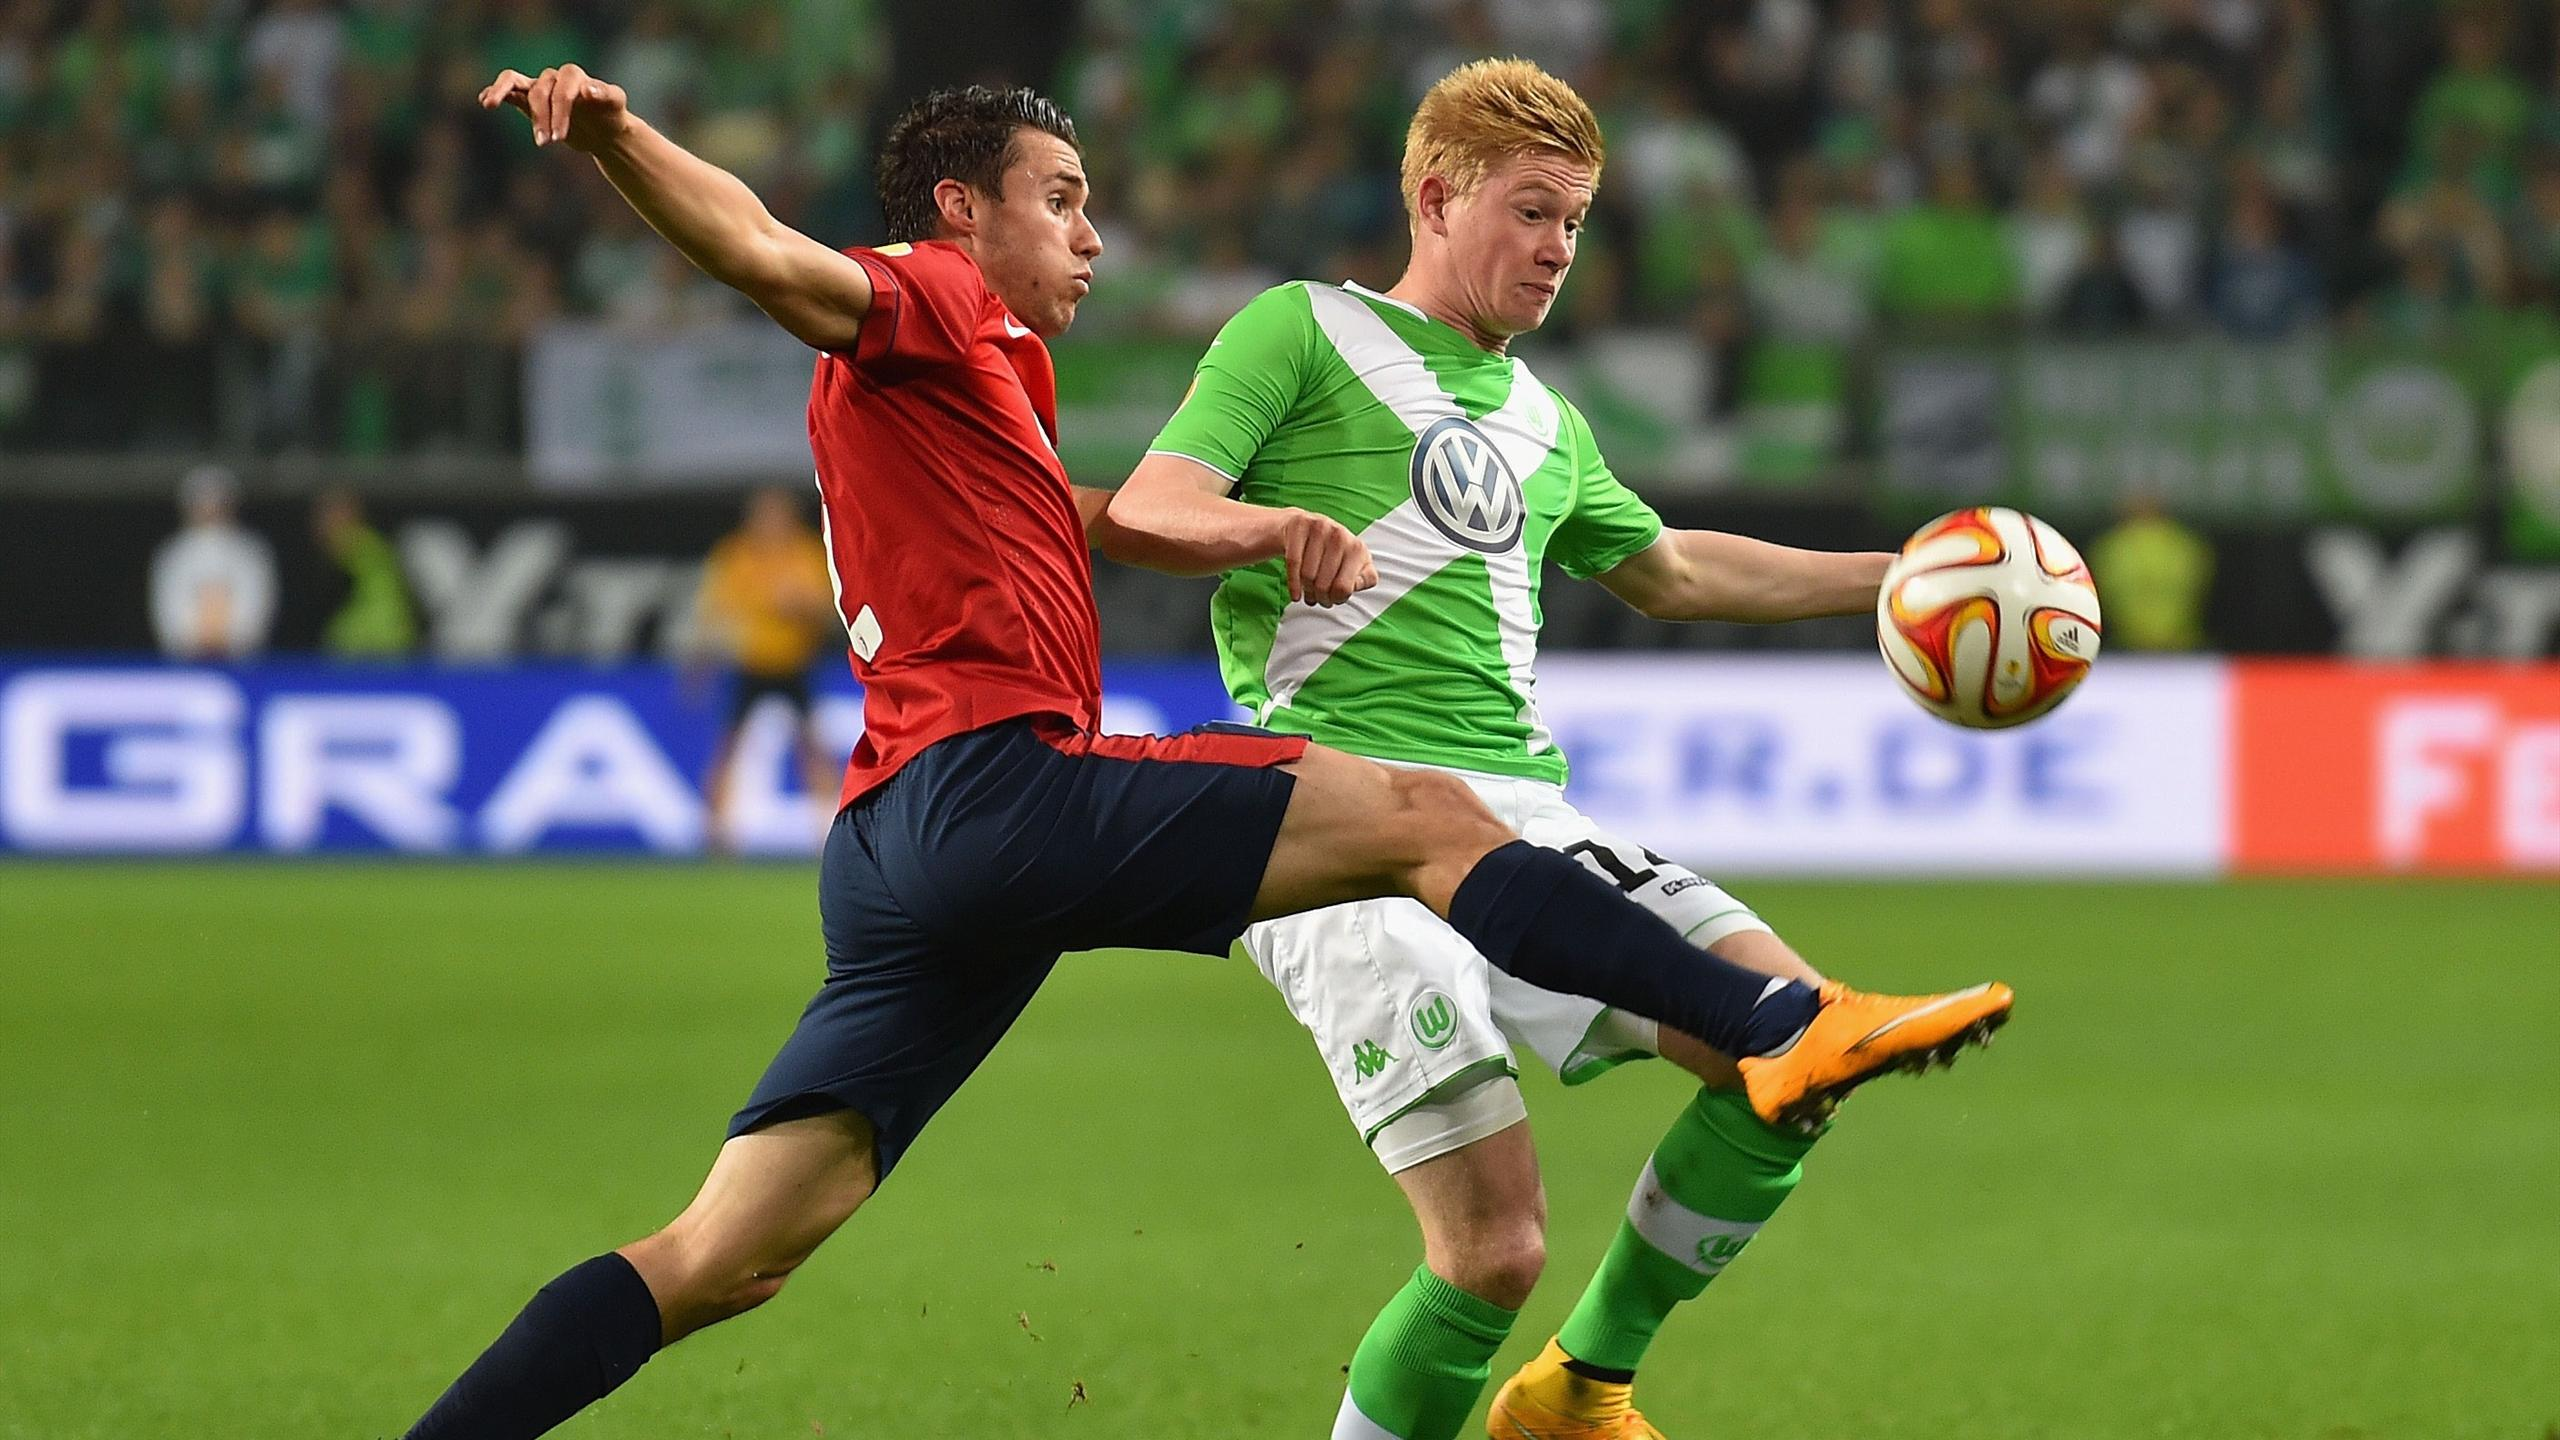 Video: Wolfsburg vs Lille